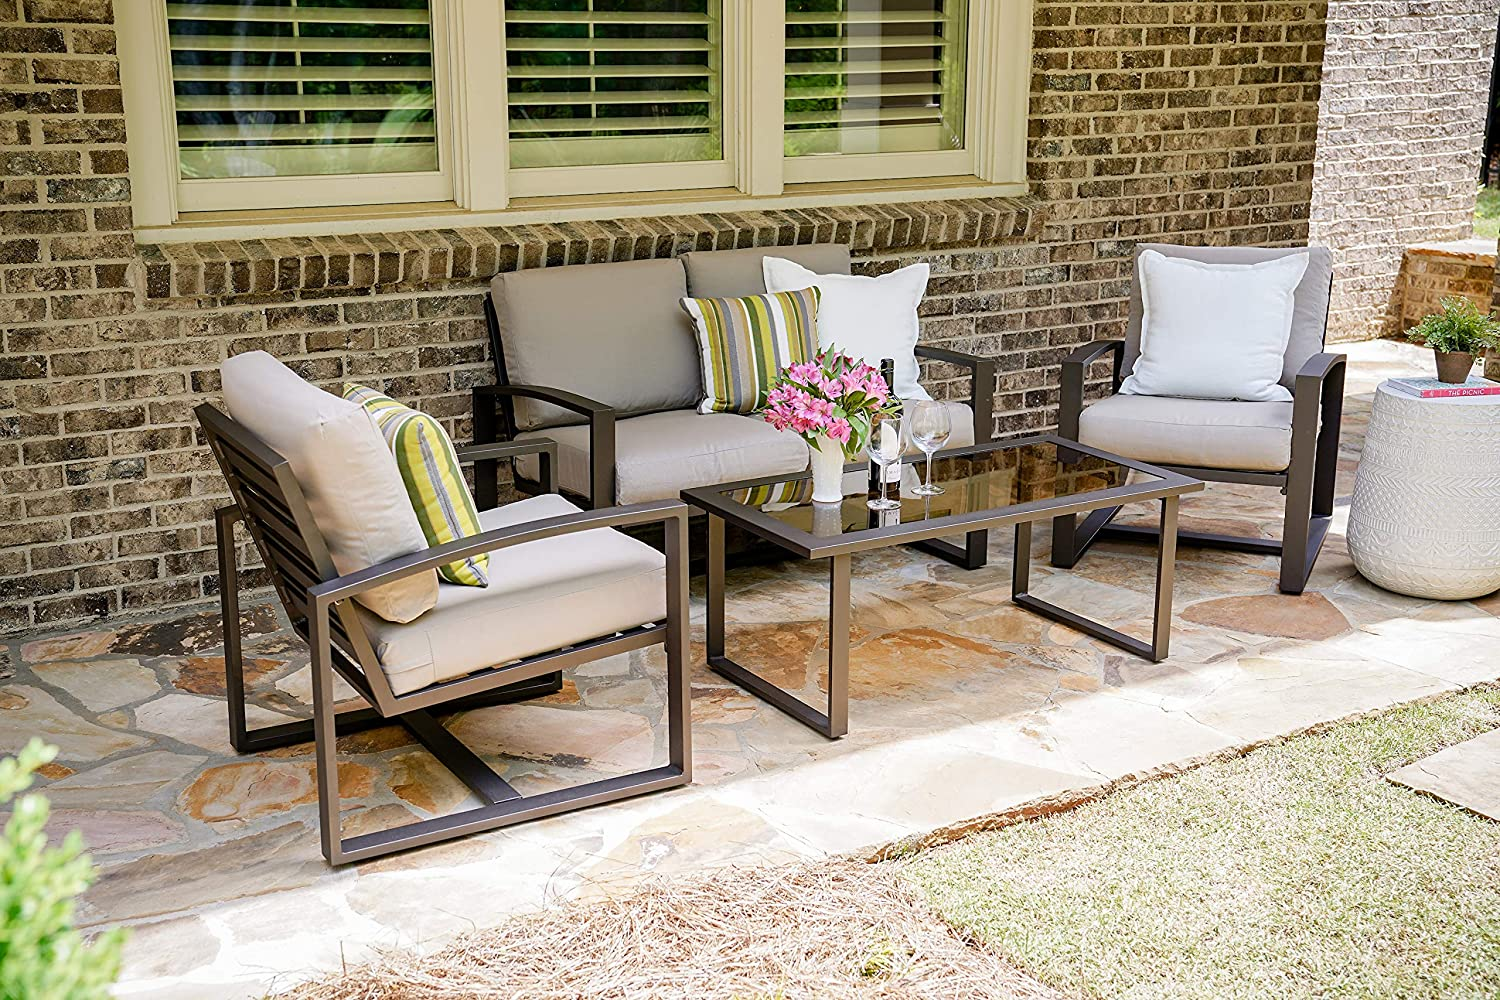 Leisure Made Jasper 4 Piece Outdoor Seating, Tan Fabric